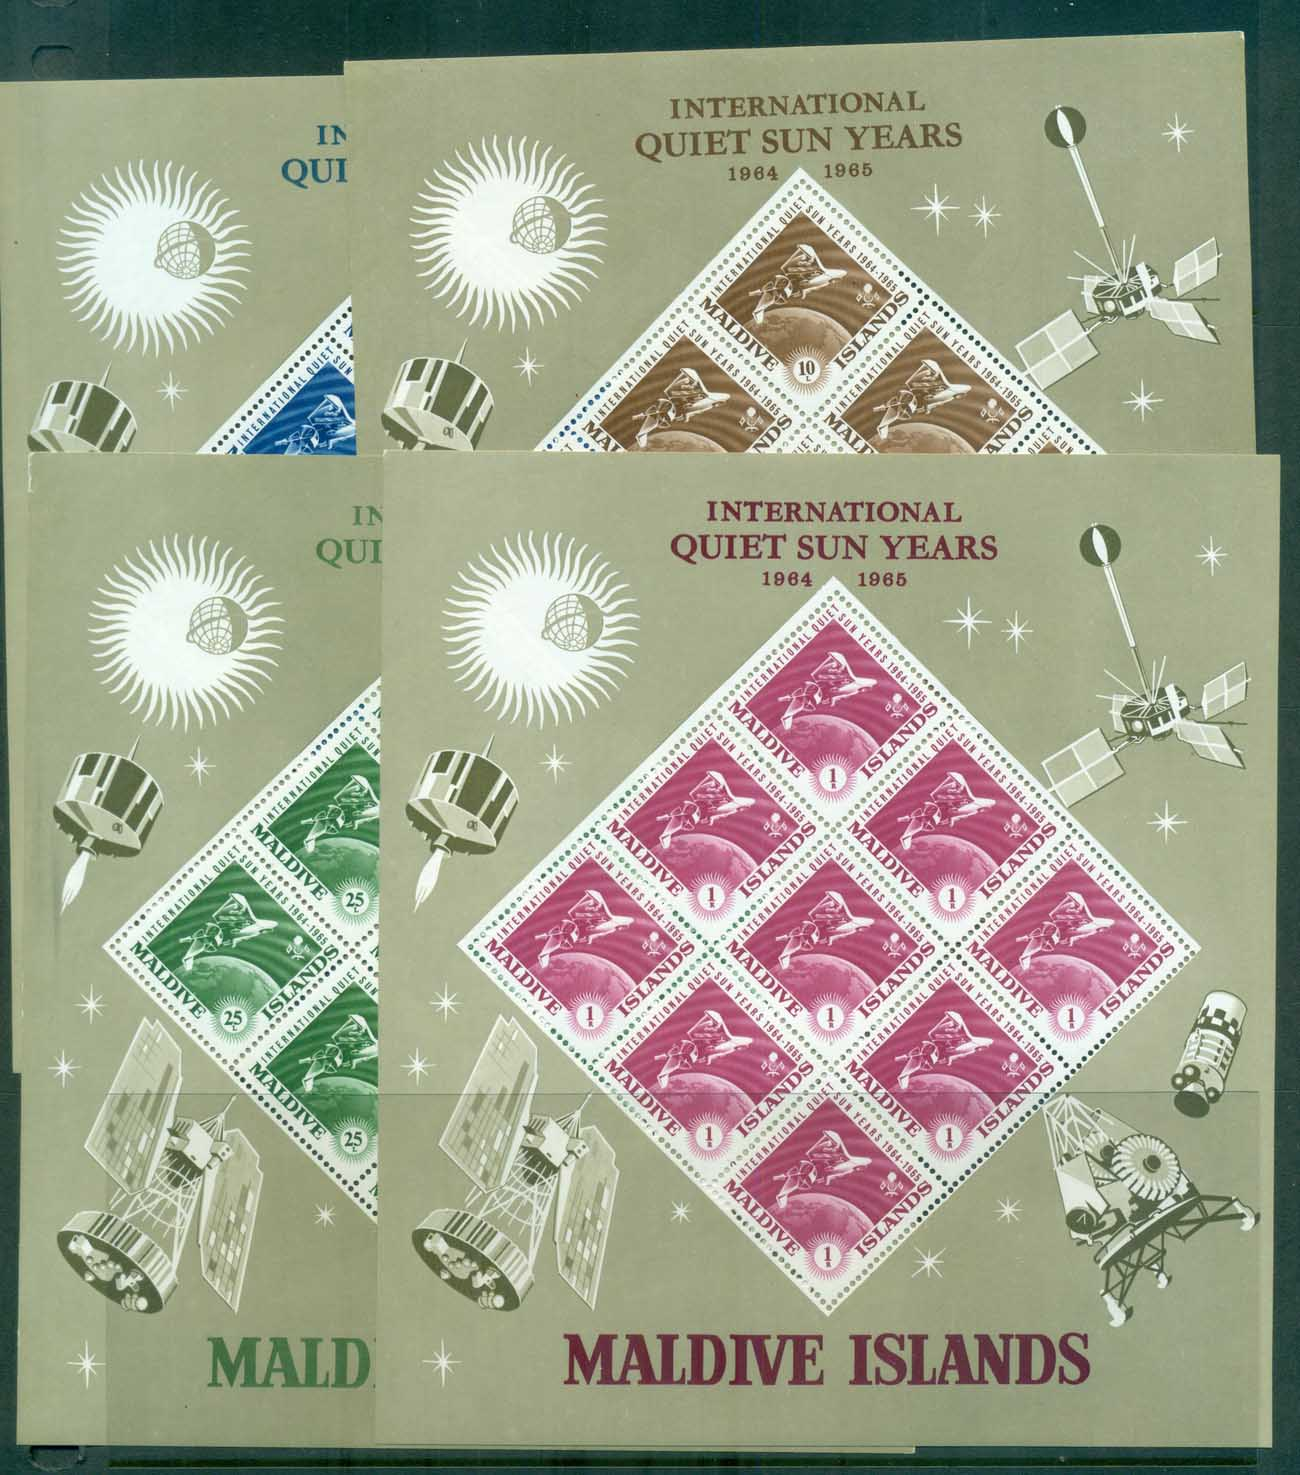 Maldive Is 1965 Quiet Sun Years, Space 4xMS lot82493